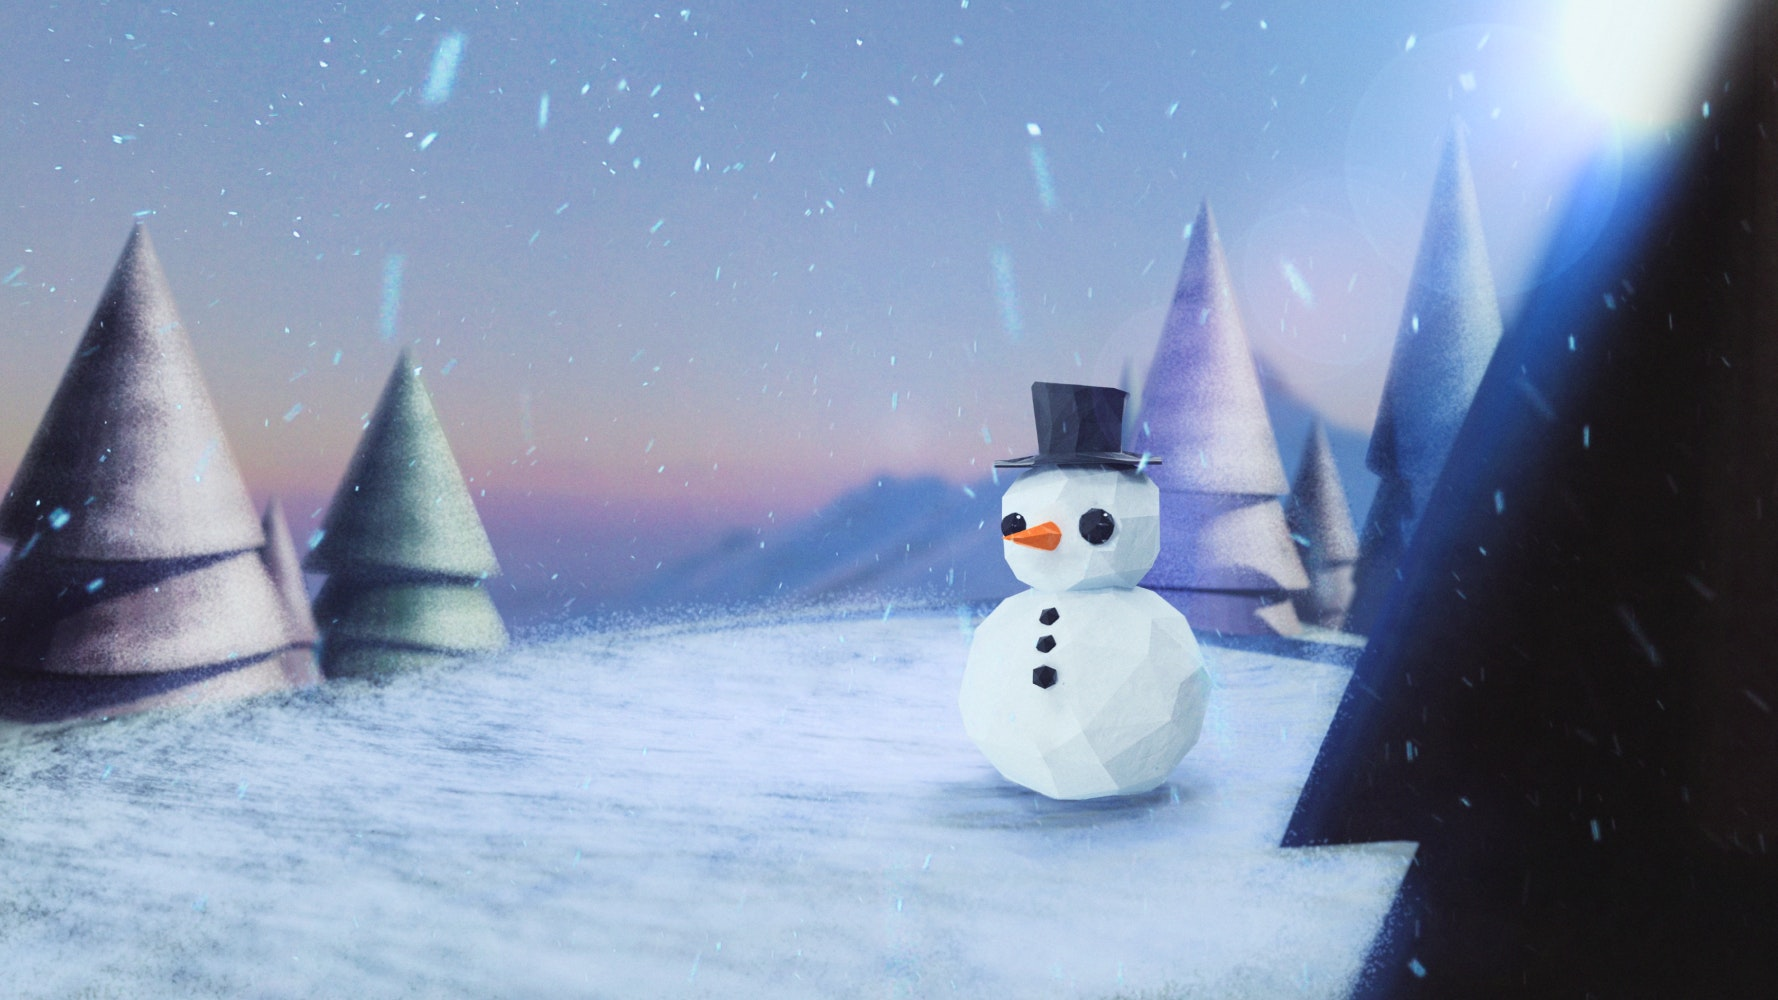 Snowman in a top hat on a frozen lake